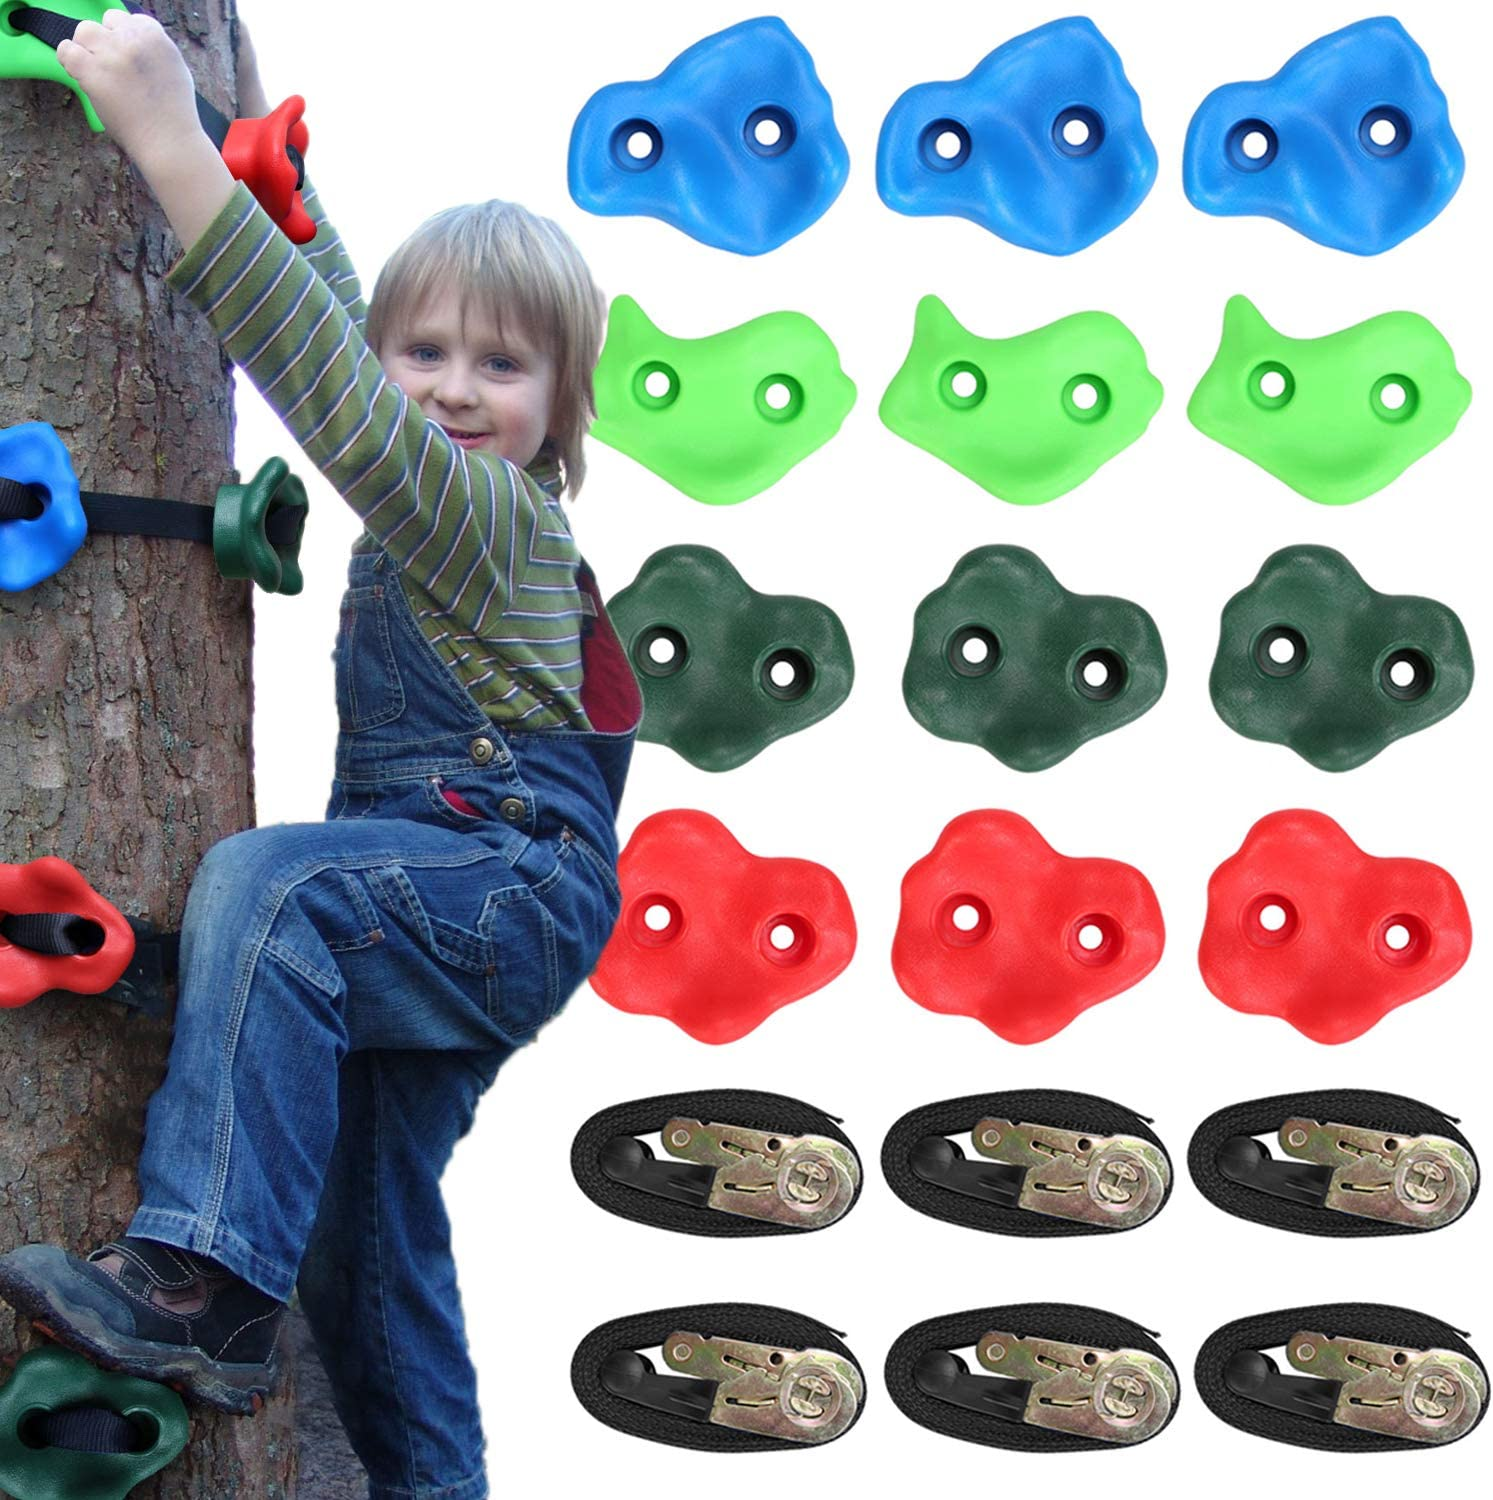 Odoland Ninja Tree Climbers, 12 Kids Rock Climbing Holds with 6 Sturdy Ratchets Straps for Outdoor Ninja Warrior Obstacle Course Training for Child and Adult: Sports & Outdoors